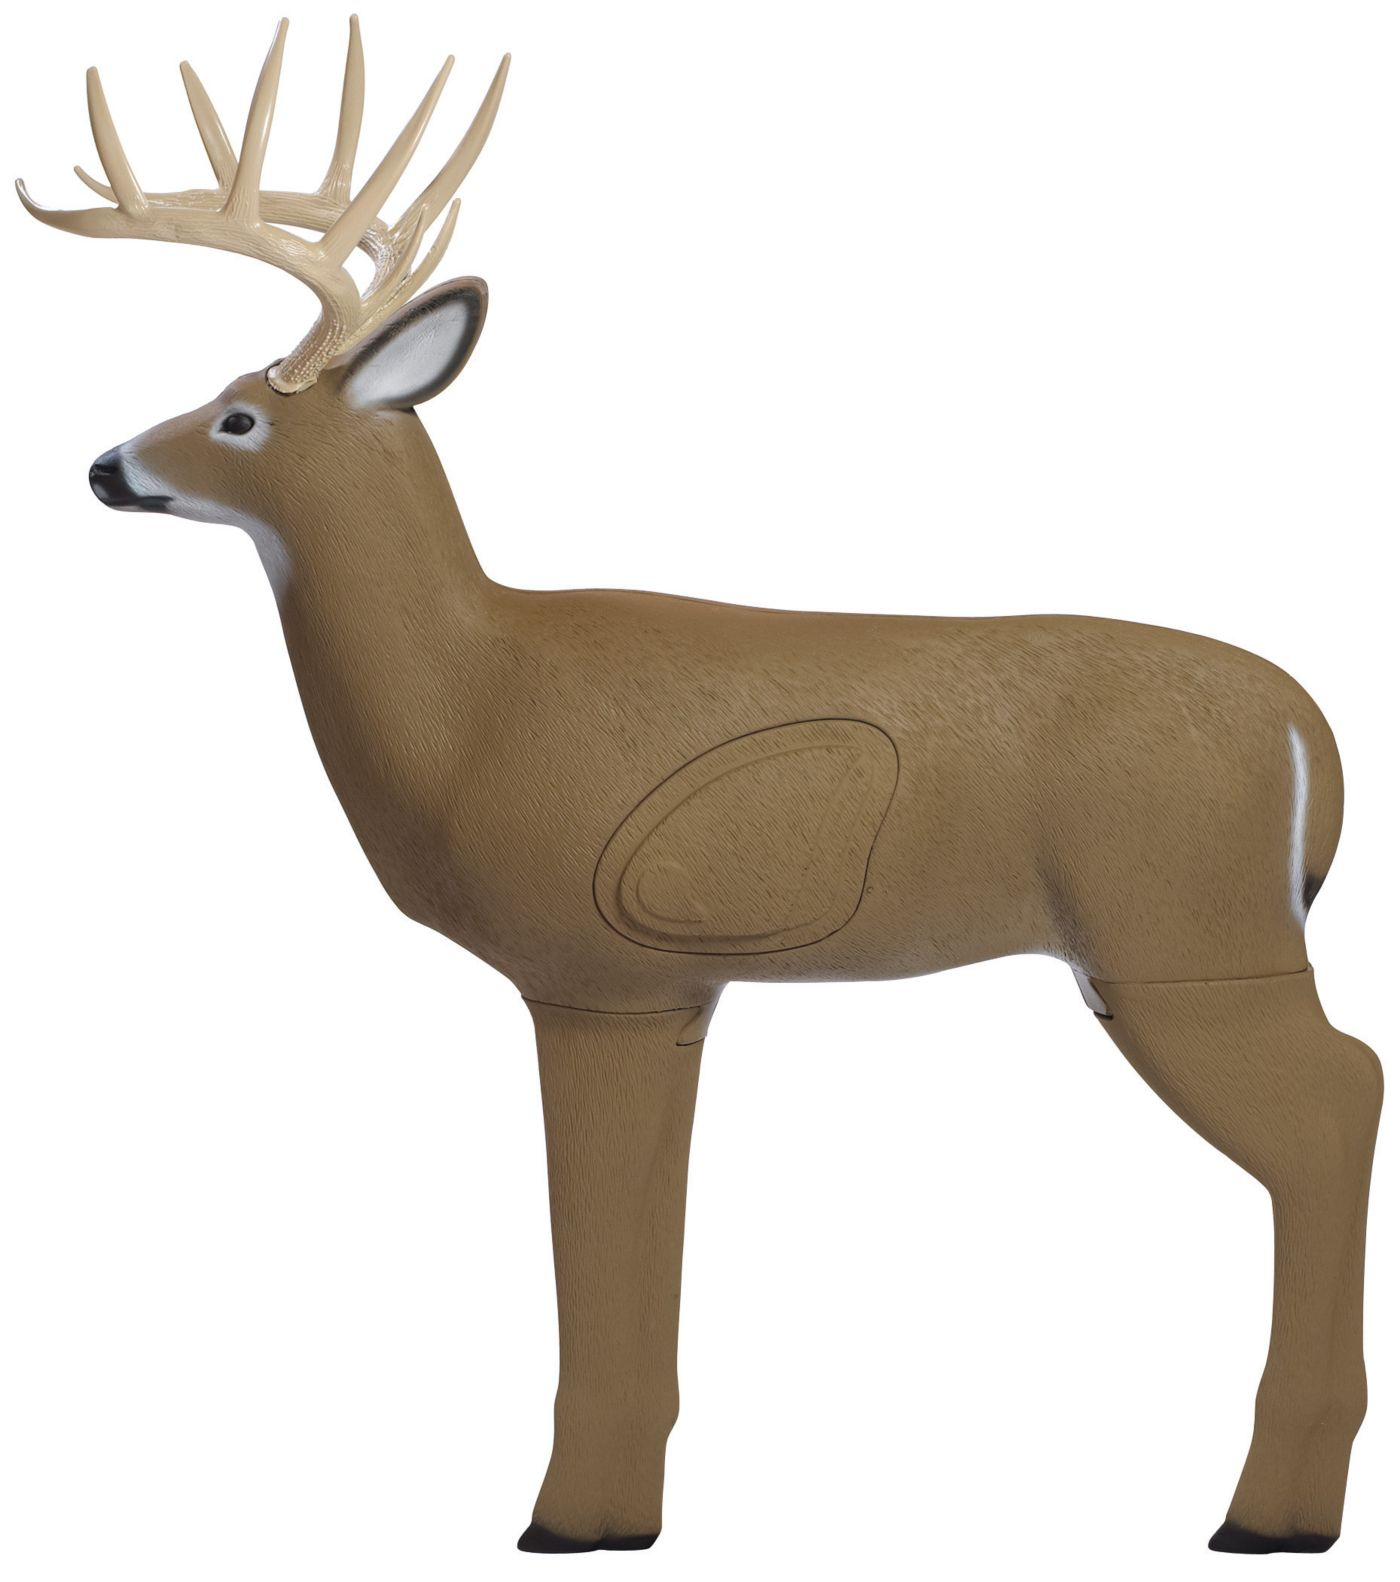 Field Logic Big Shooter Buck 3-D Archery Target